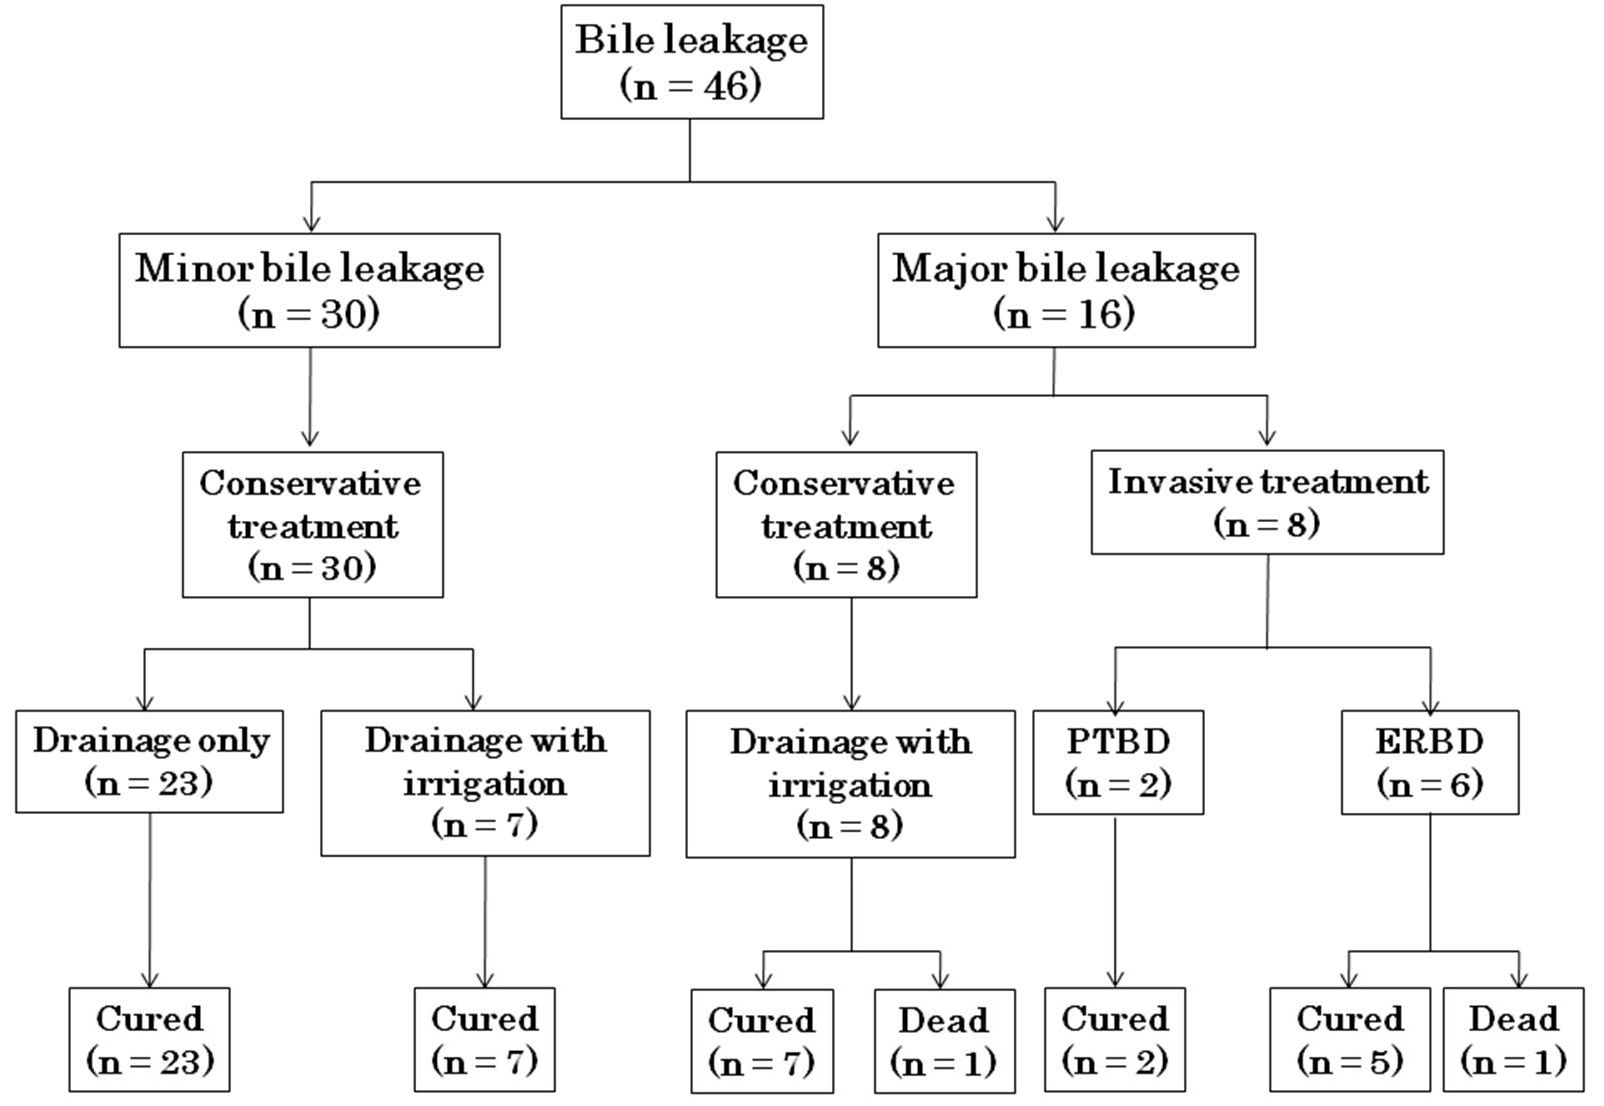 Strategies to Decrease Morbidity After Hepatectomy for